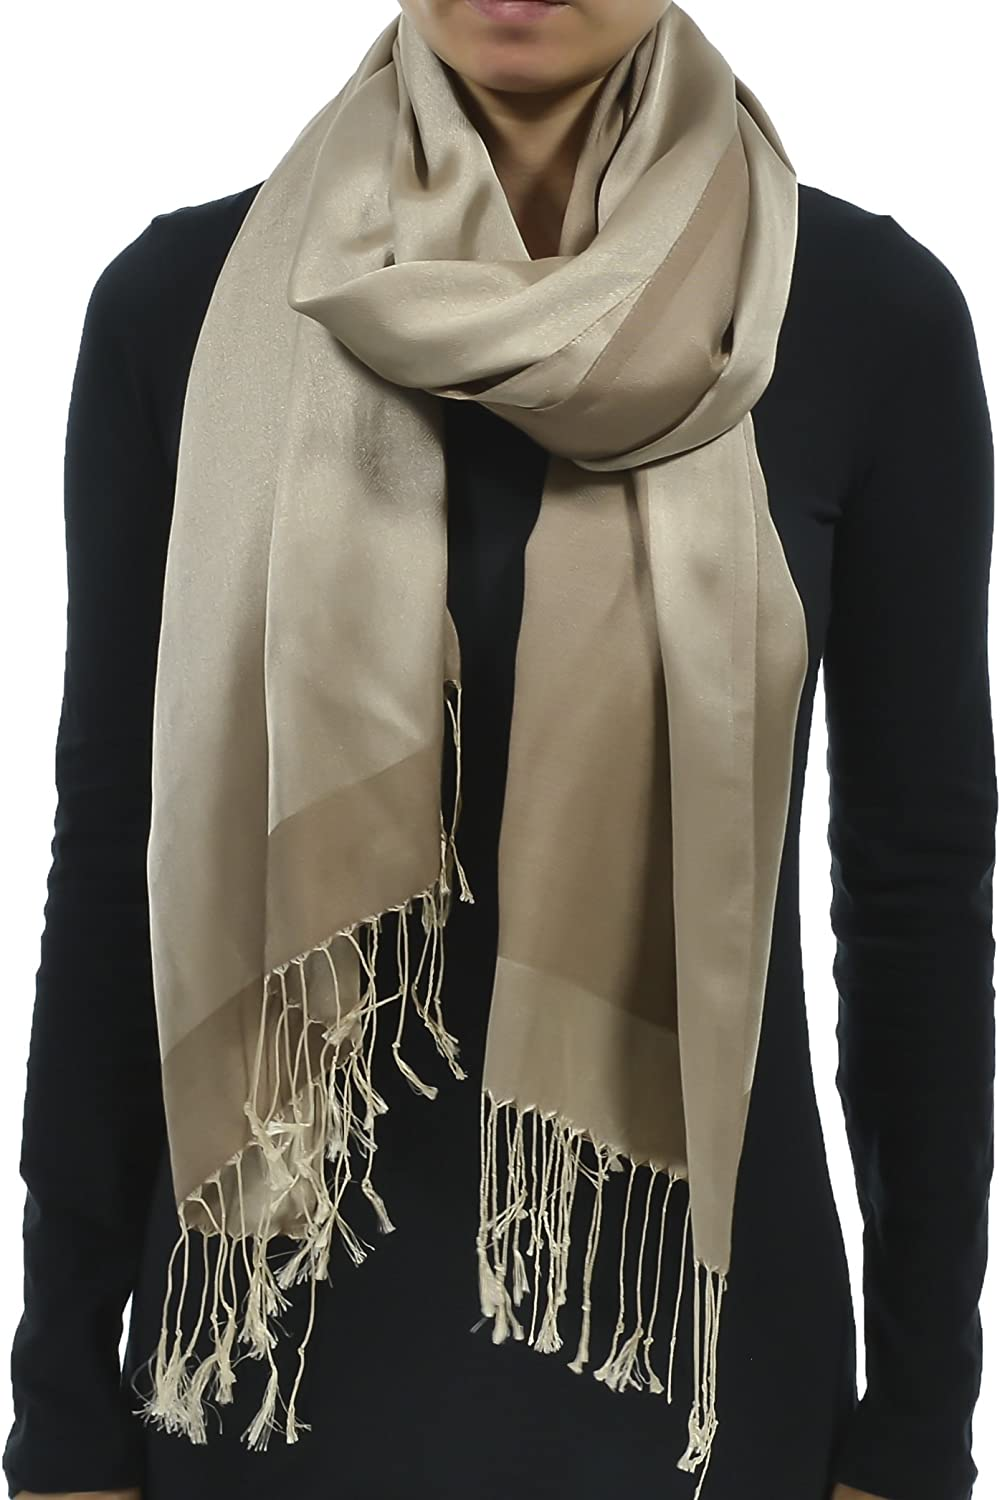 Hand By Hand Aprileo Women's Solid Silk Feel Scarf Wrap Shawl Thin Reversible